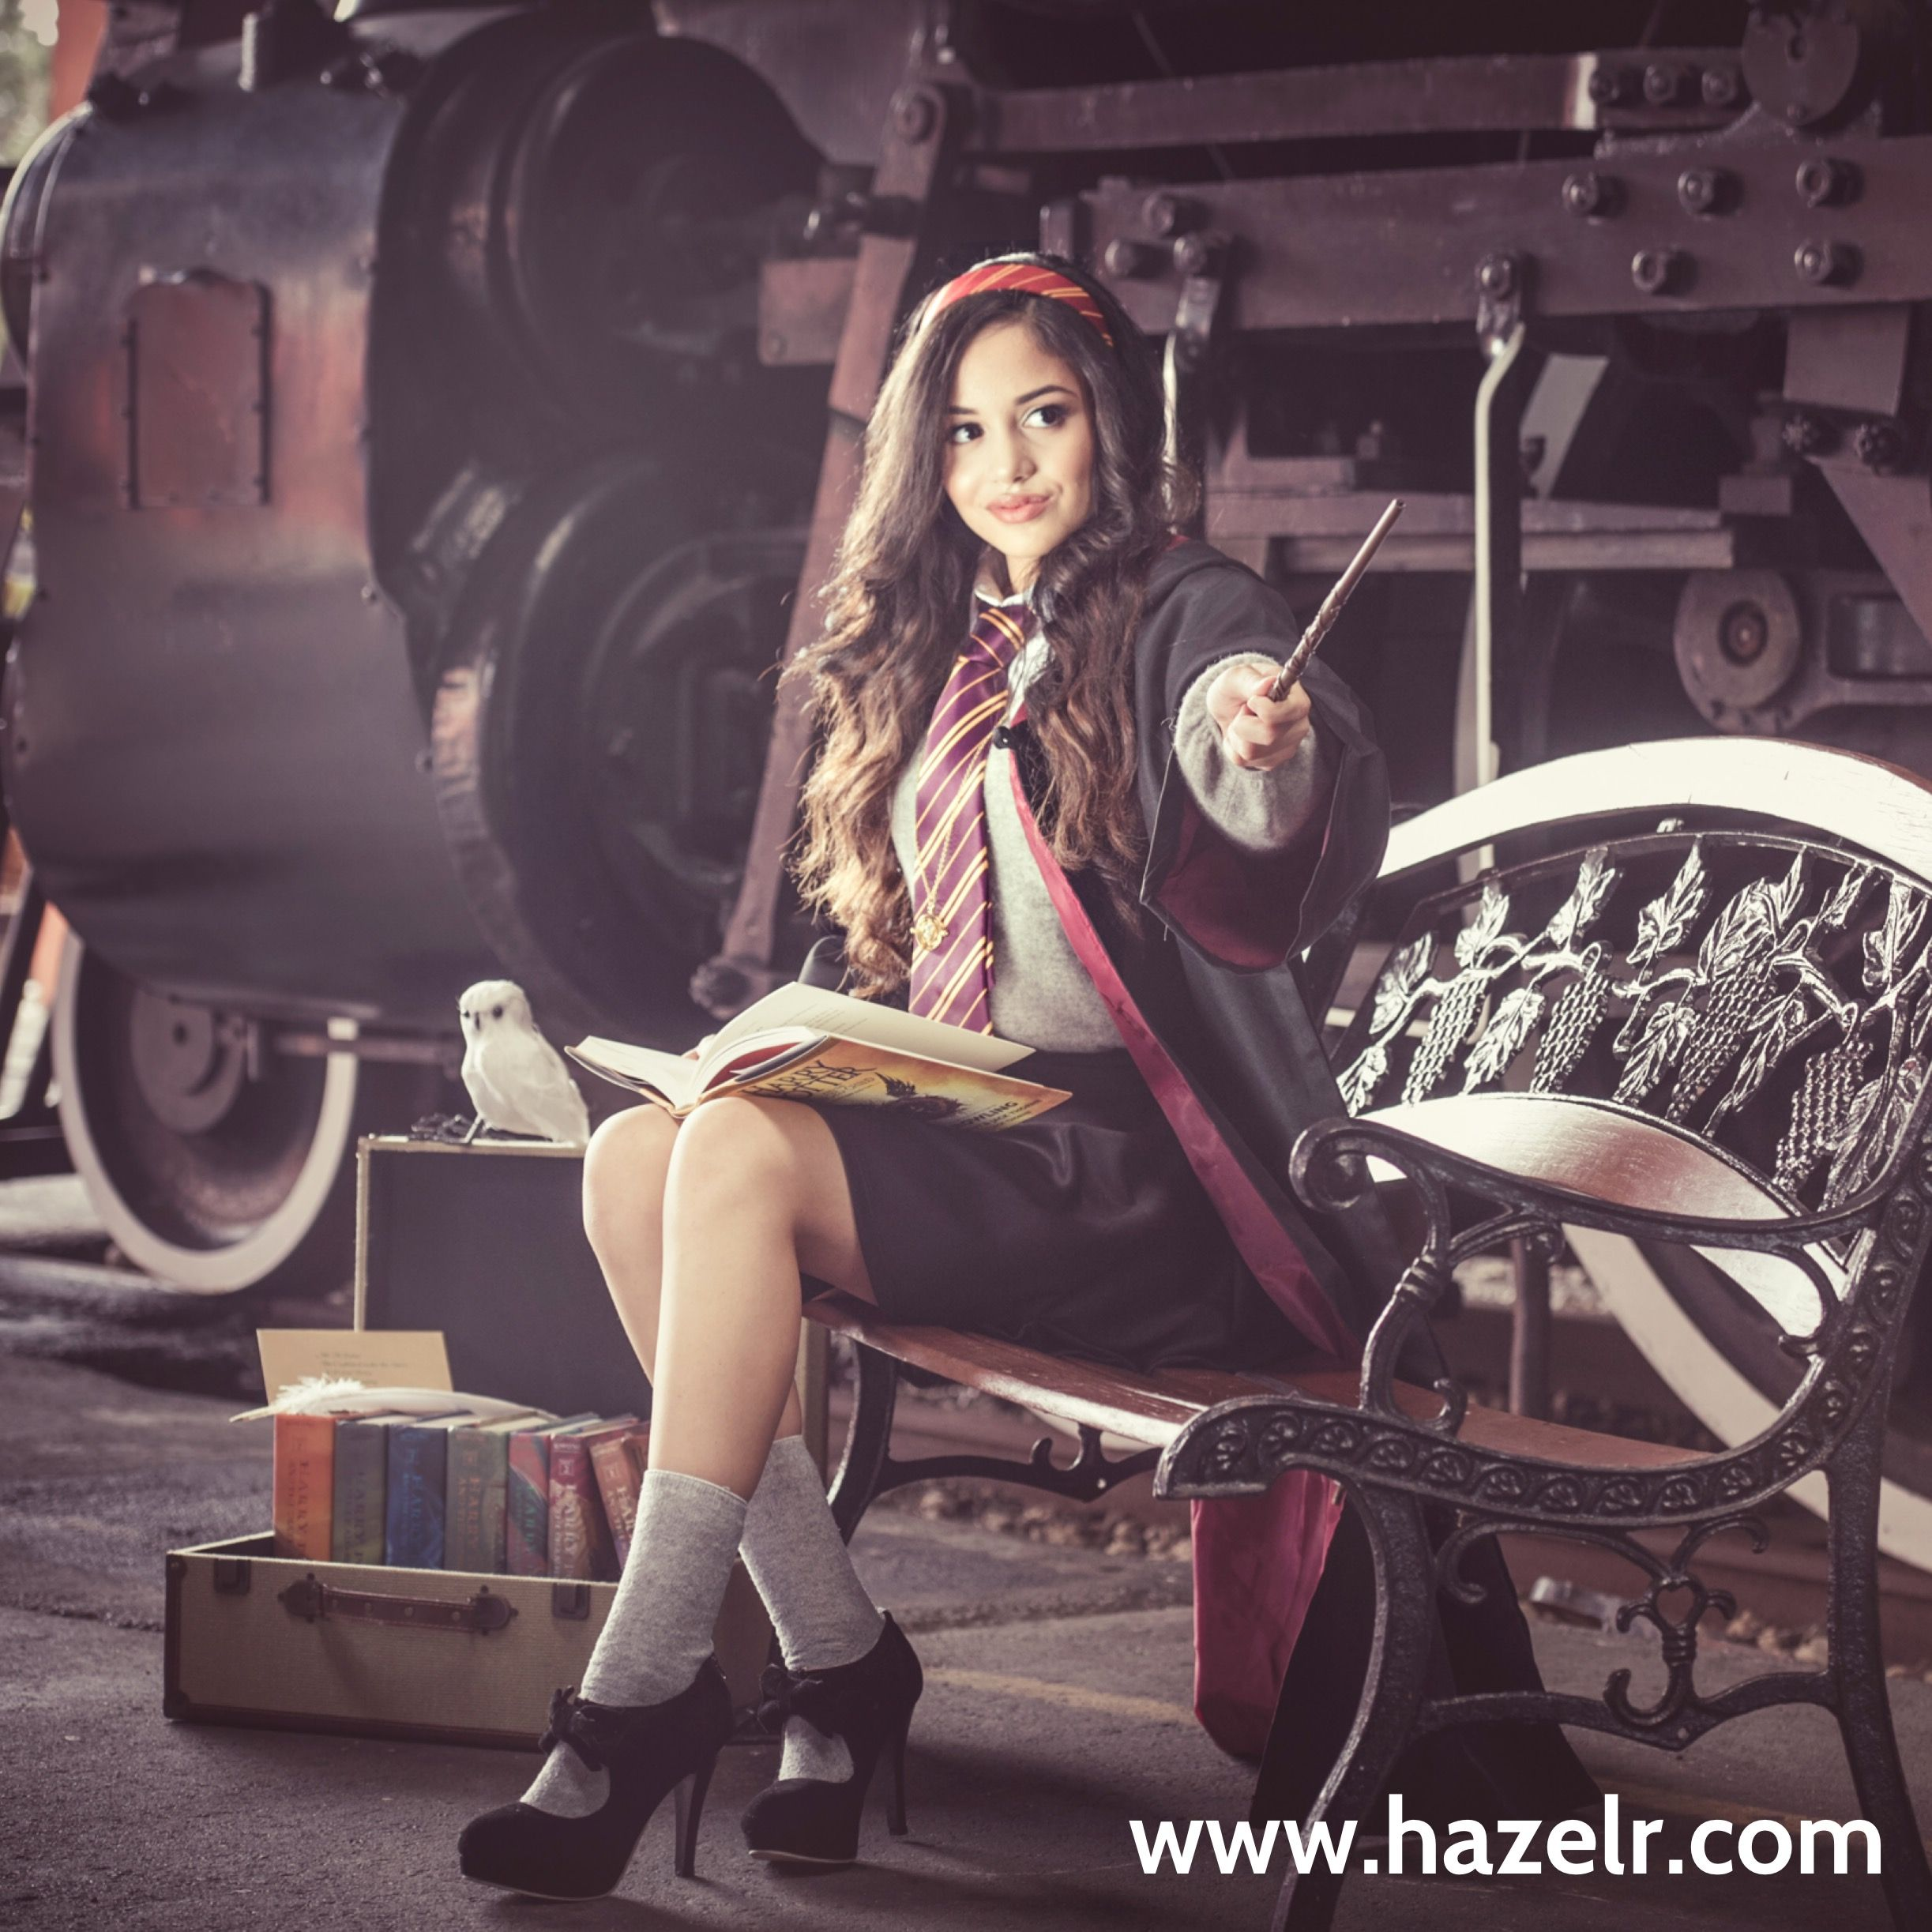 Harry Potter Inspired Photos Quinceanera Inspiration Miami Gold Coast Train